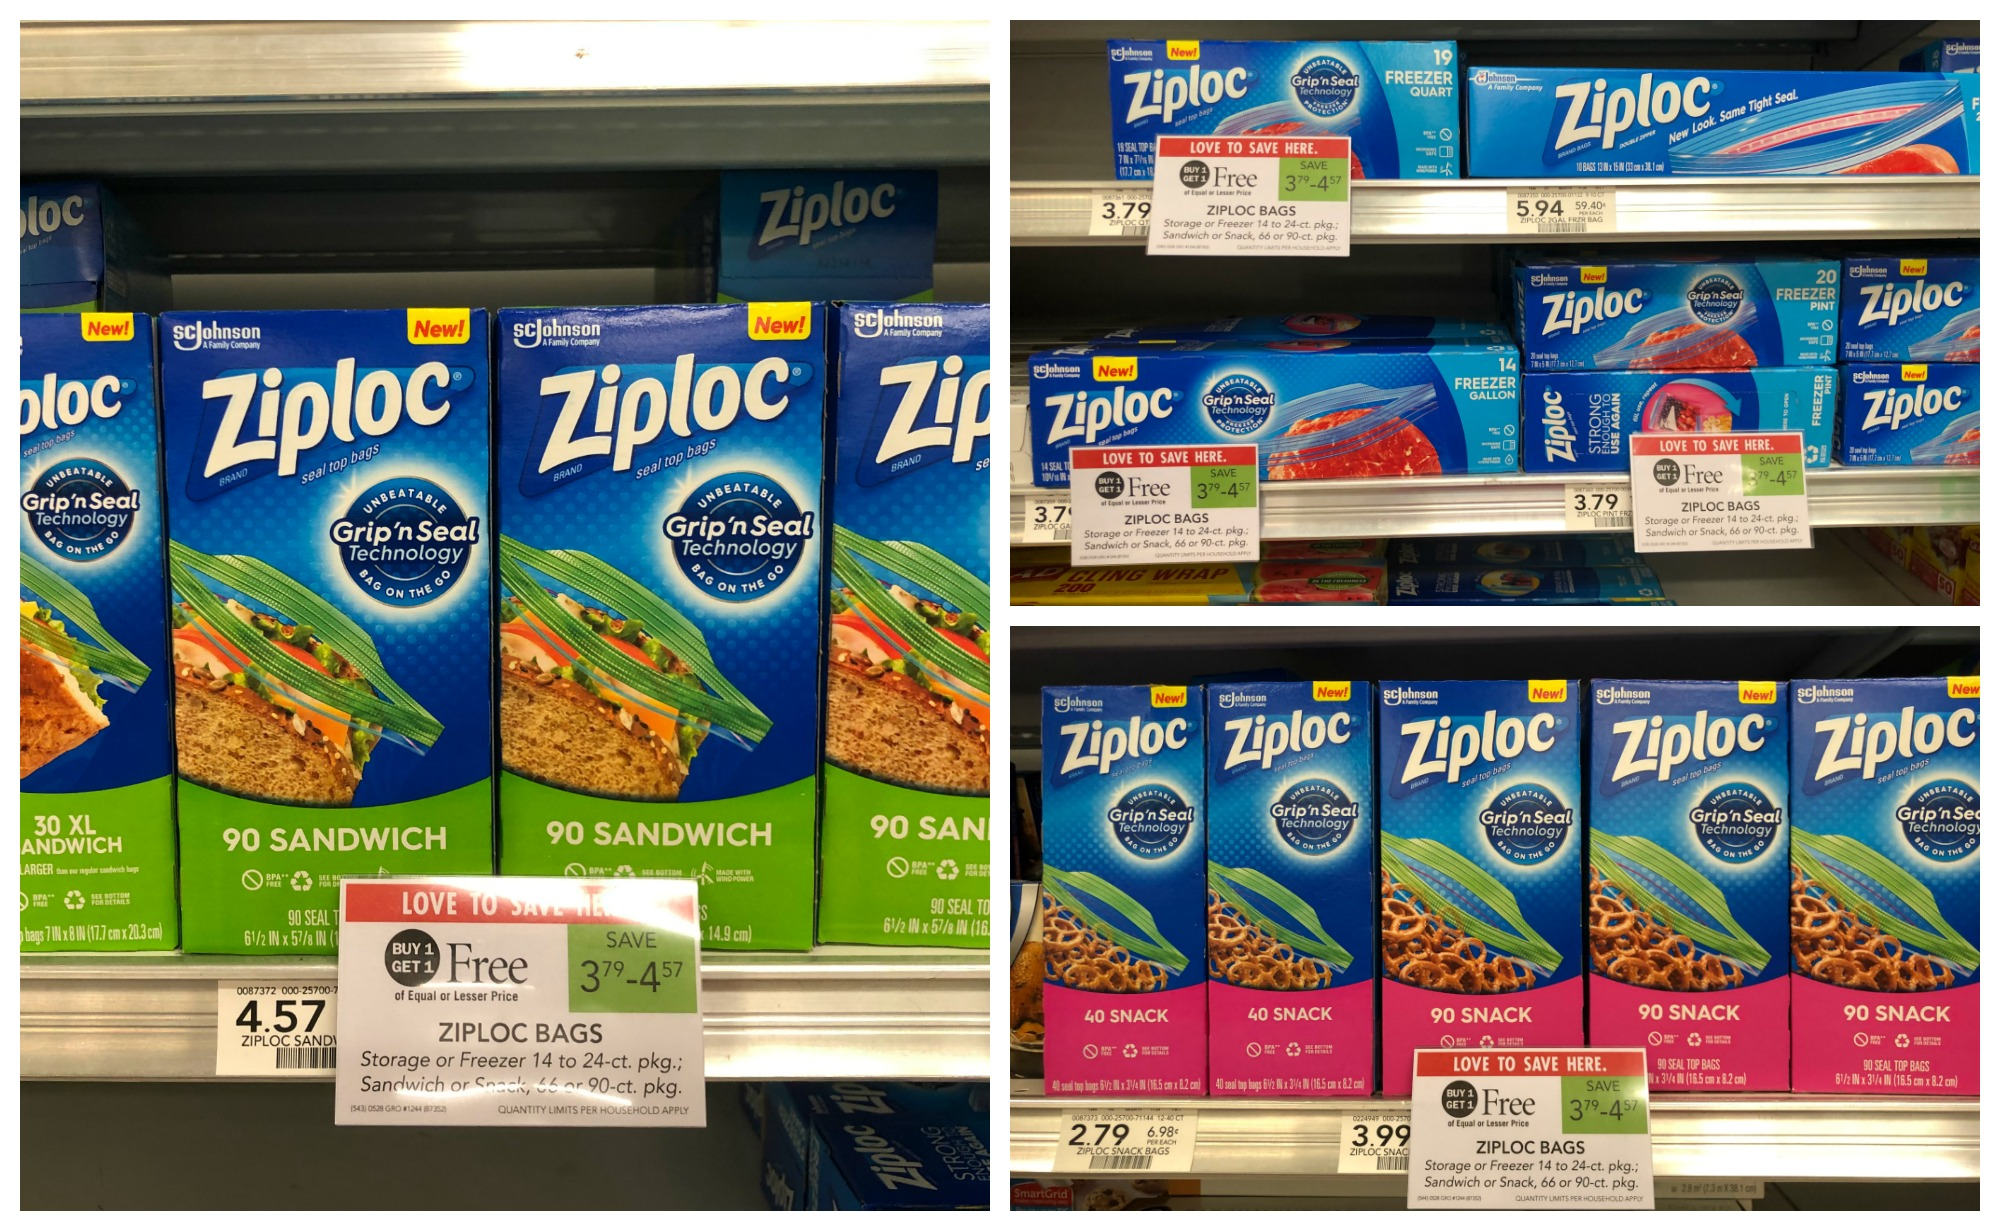 Trust Ziploc®Brand Products For Your Summer Fun - Save Now At Publix on I Heart Publix 1